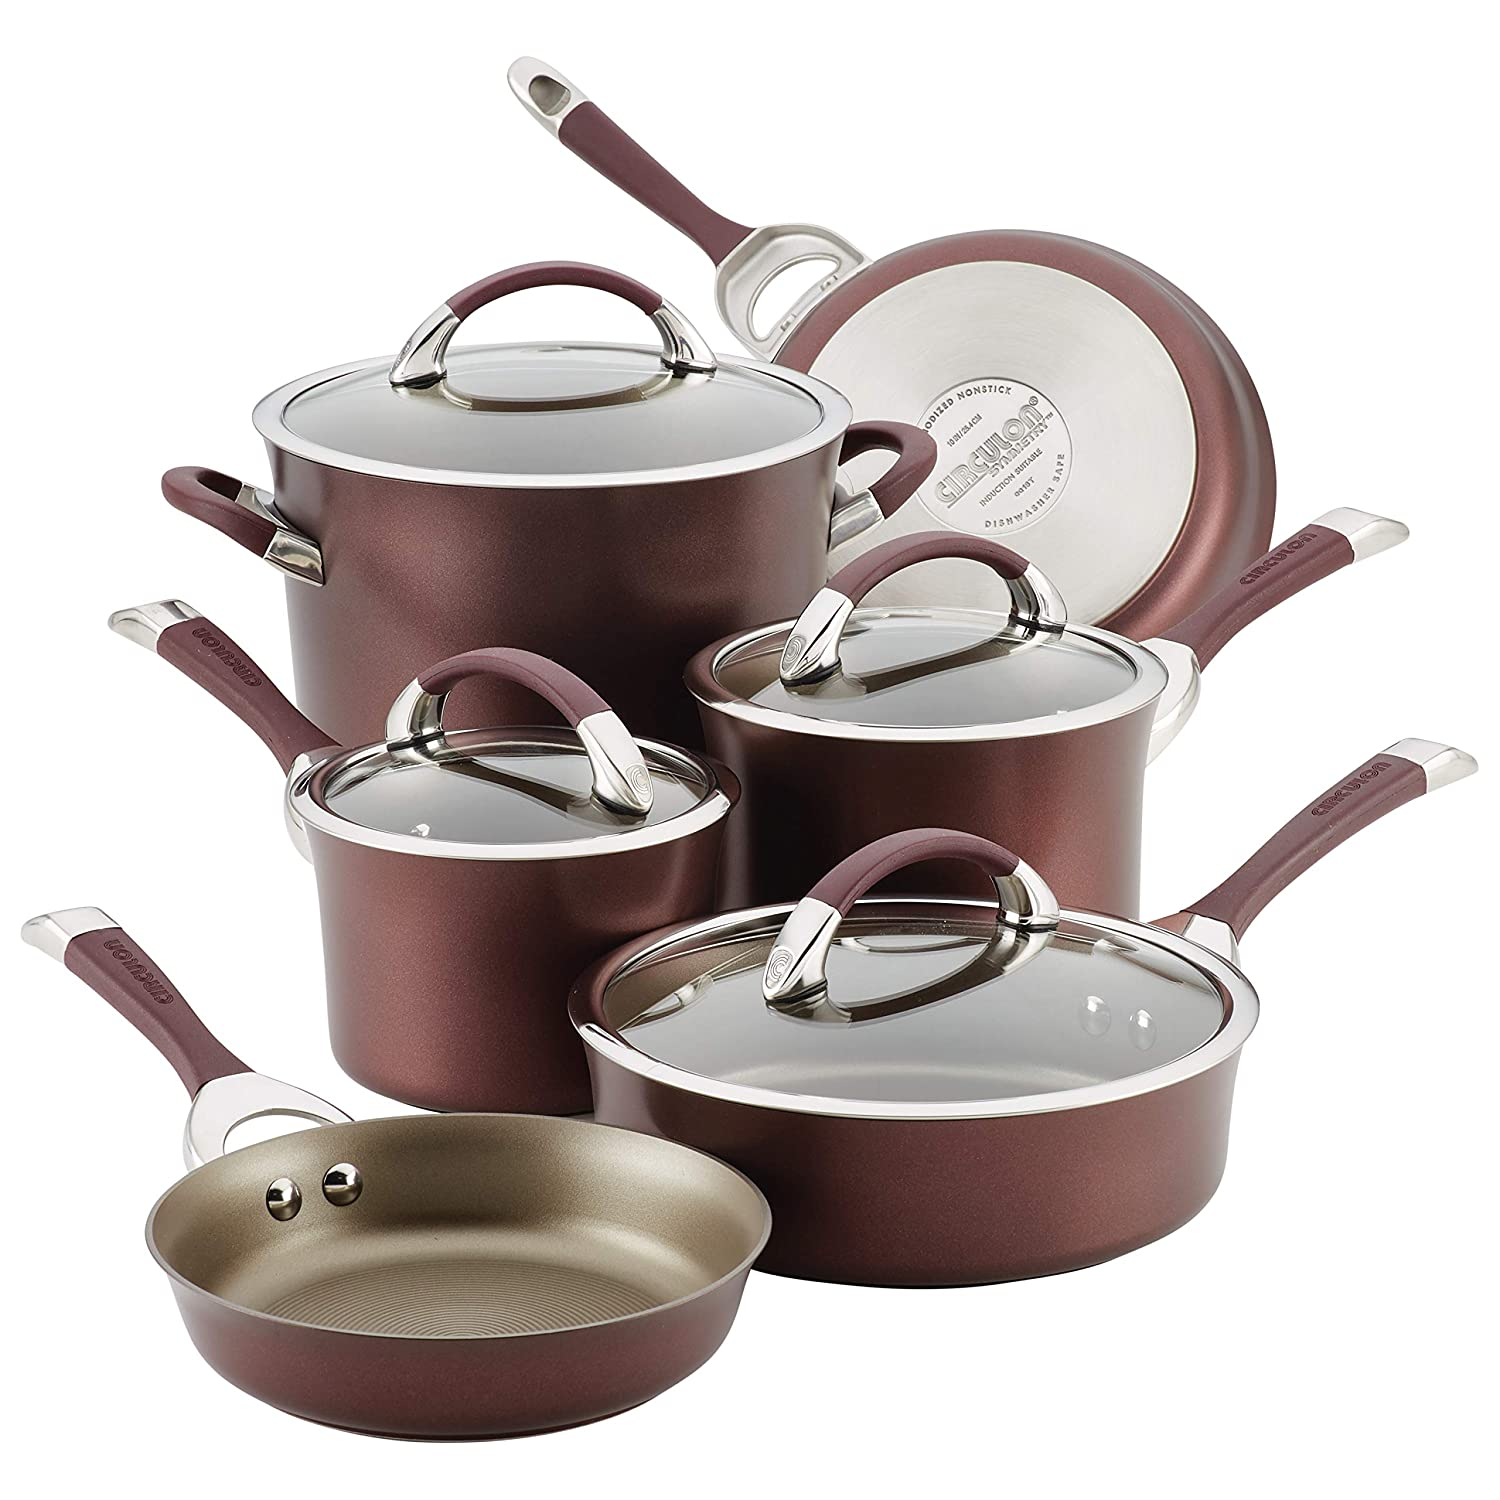 Circulon 87529 10-Piece Hard Anodized Aluminum Cookware Set, Merlot